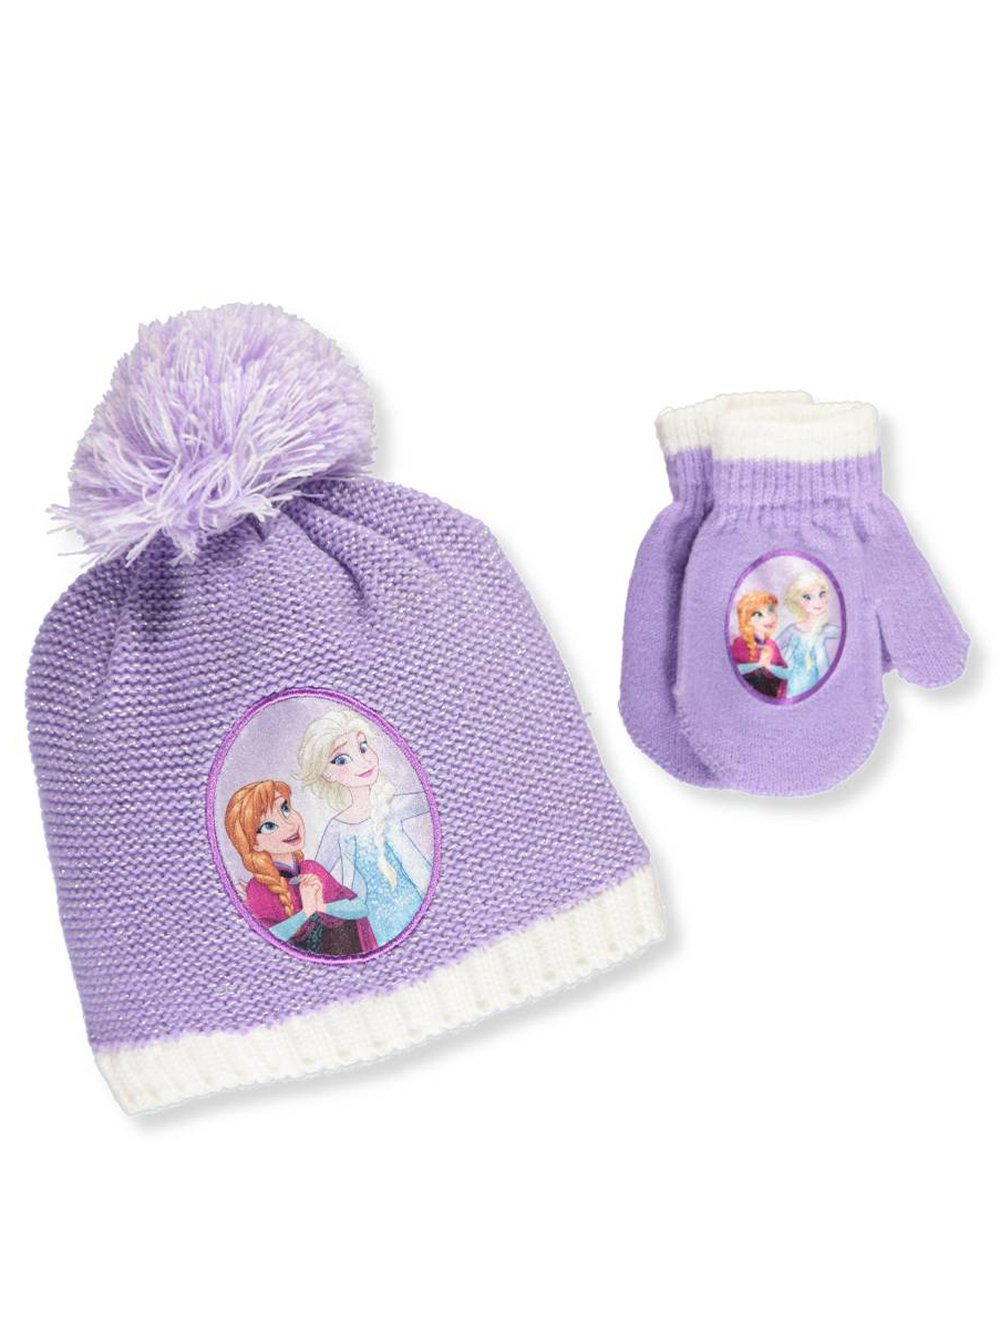 Frozen Elsa Anna Girls Beanie Hat and Mittens Set (Lilac) DISNEY 00-3LXFY8-OA